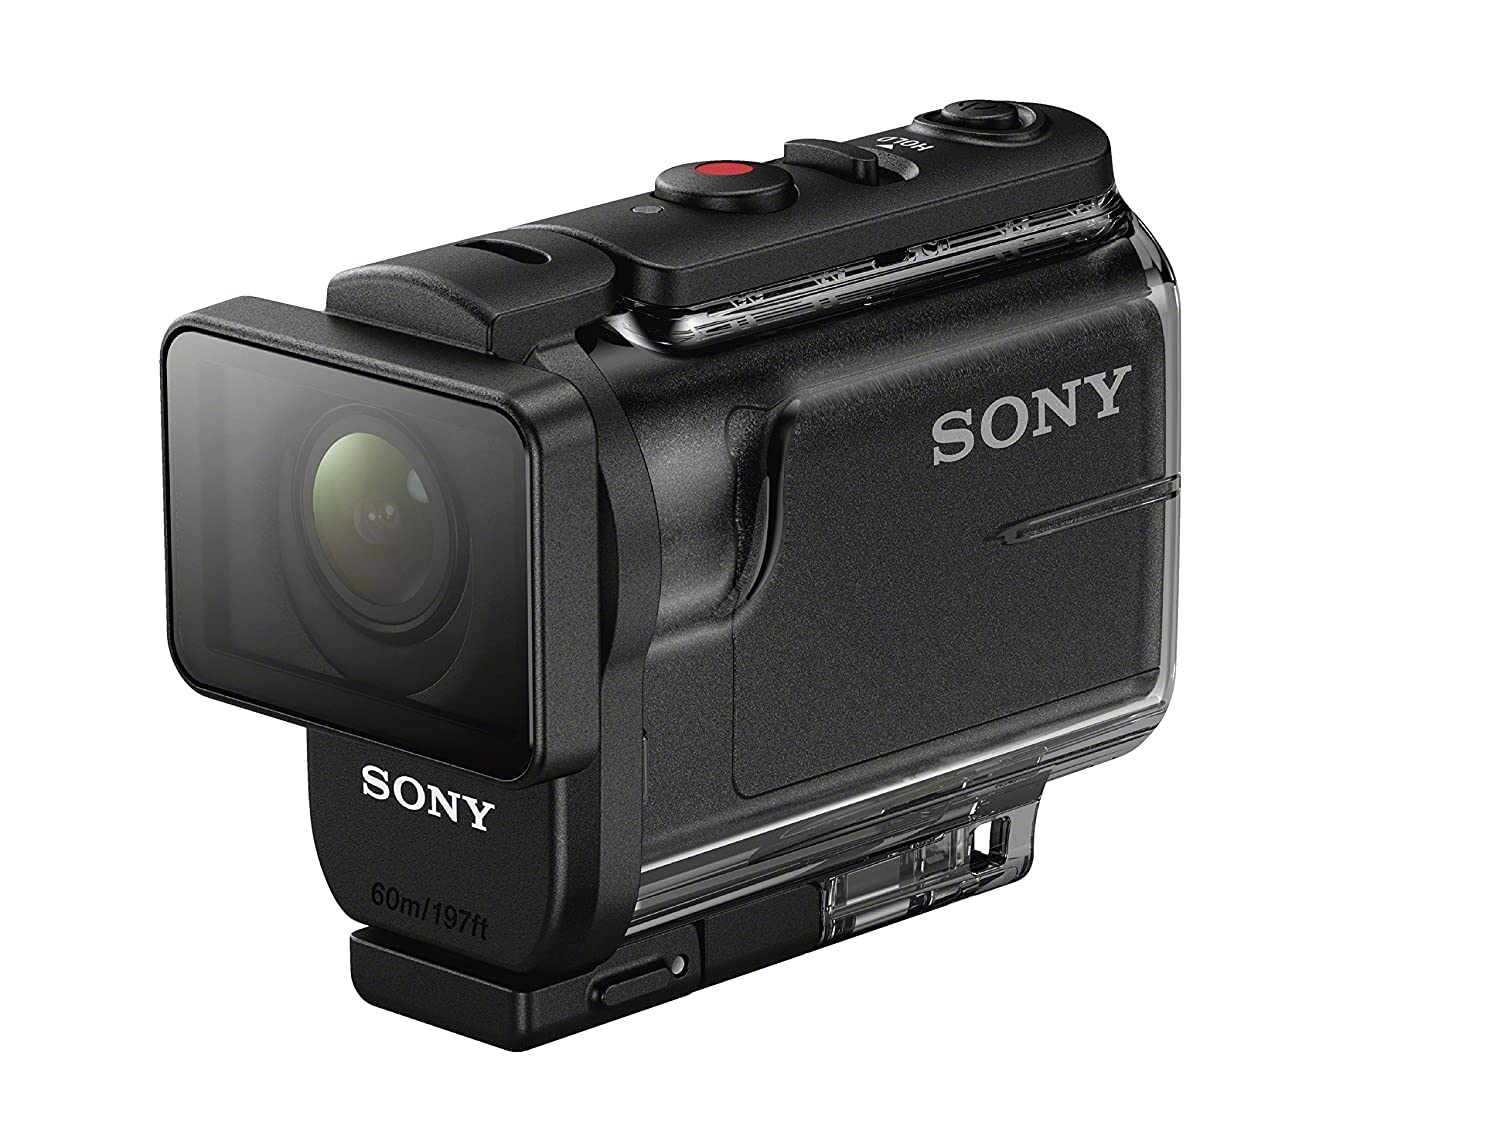 Top 5 Best Sony Action Cameras (2020 Review & Buying Guide) 4